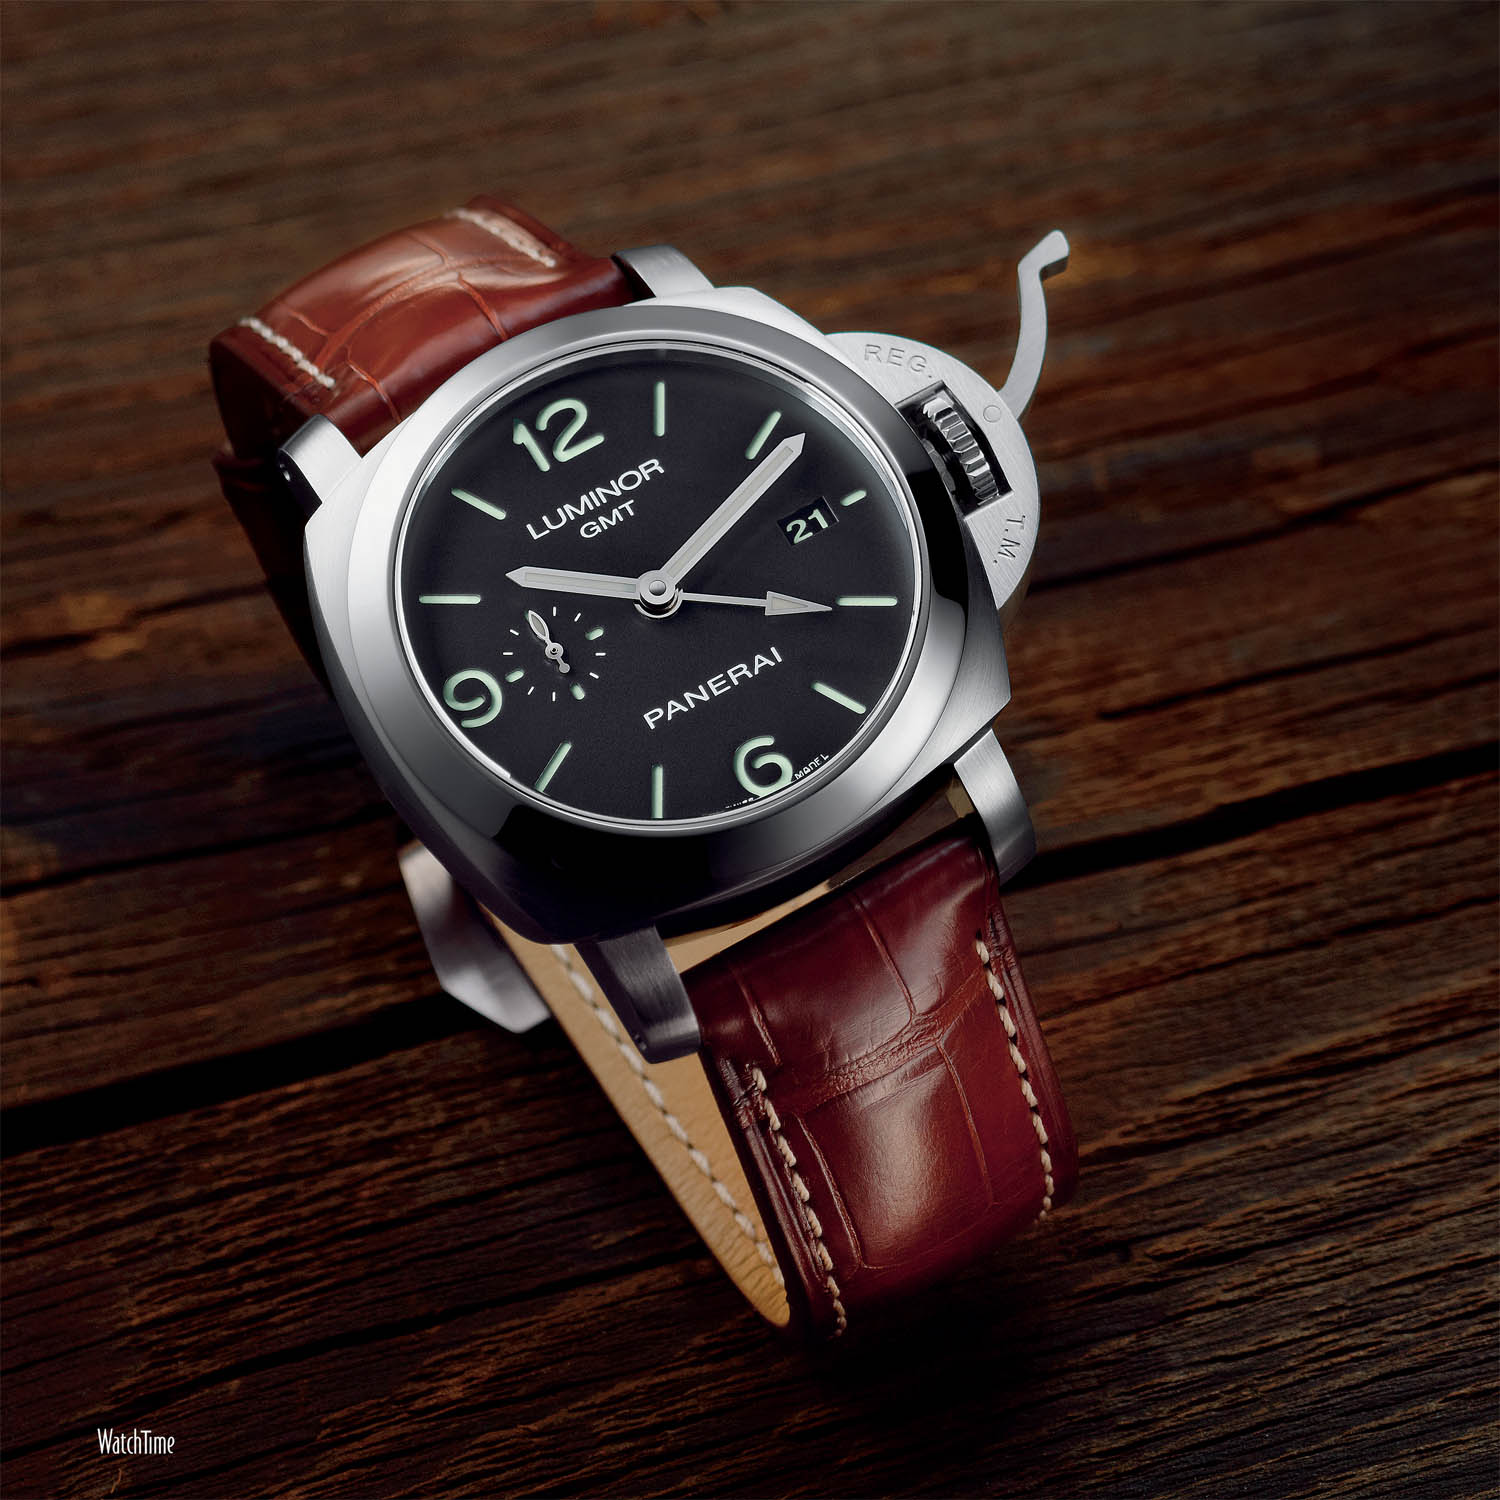 Panerai Luminor 1950 3 Days GMT - PAM 320 - 2